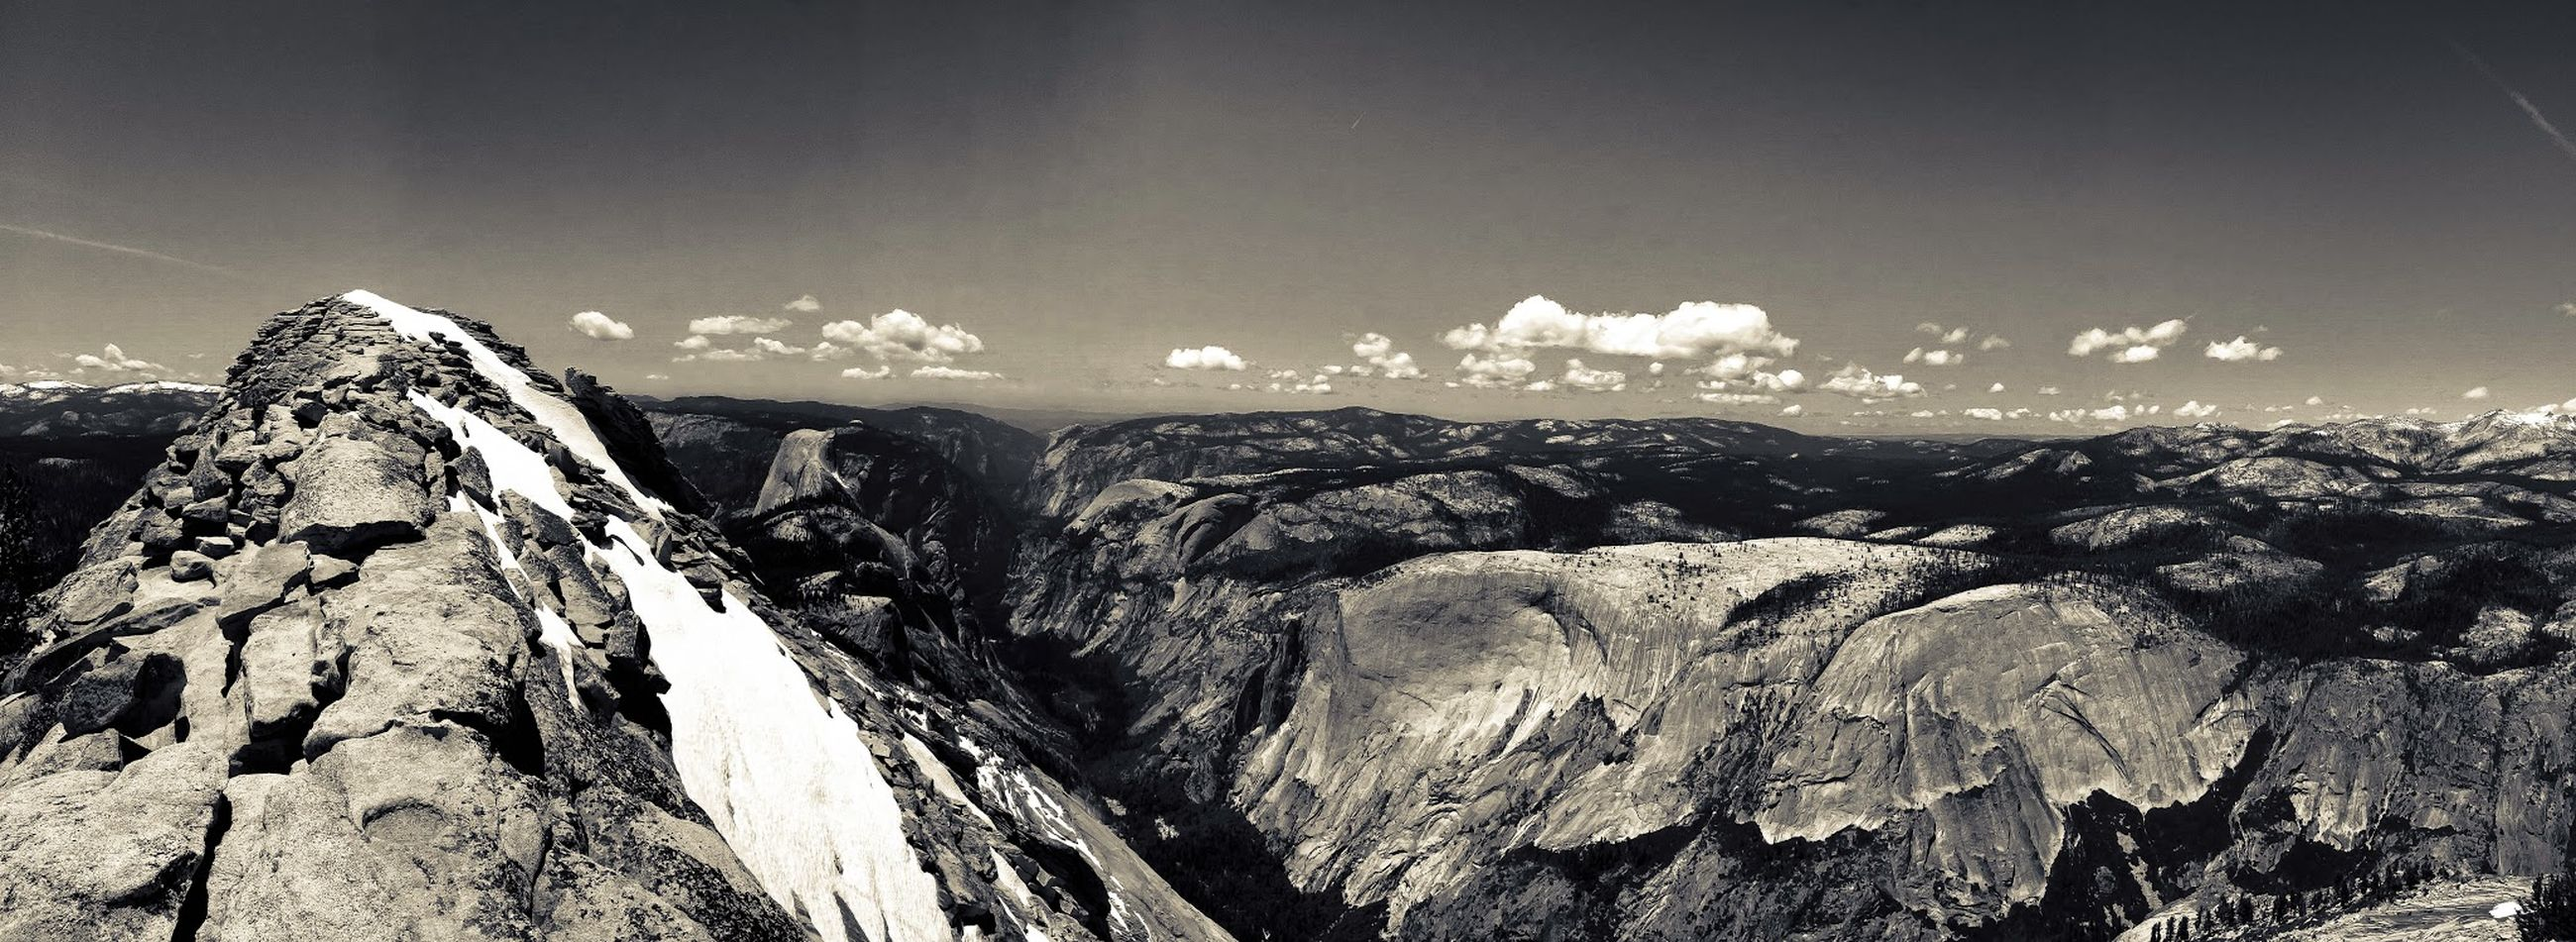 The view can make the journey worth it all. Check This Out Hello World Enjoying Life Nature Photography Totally Worth It